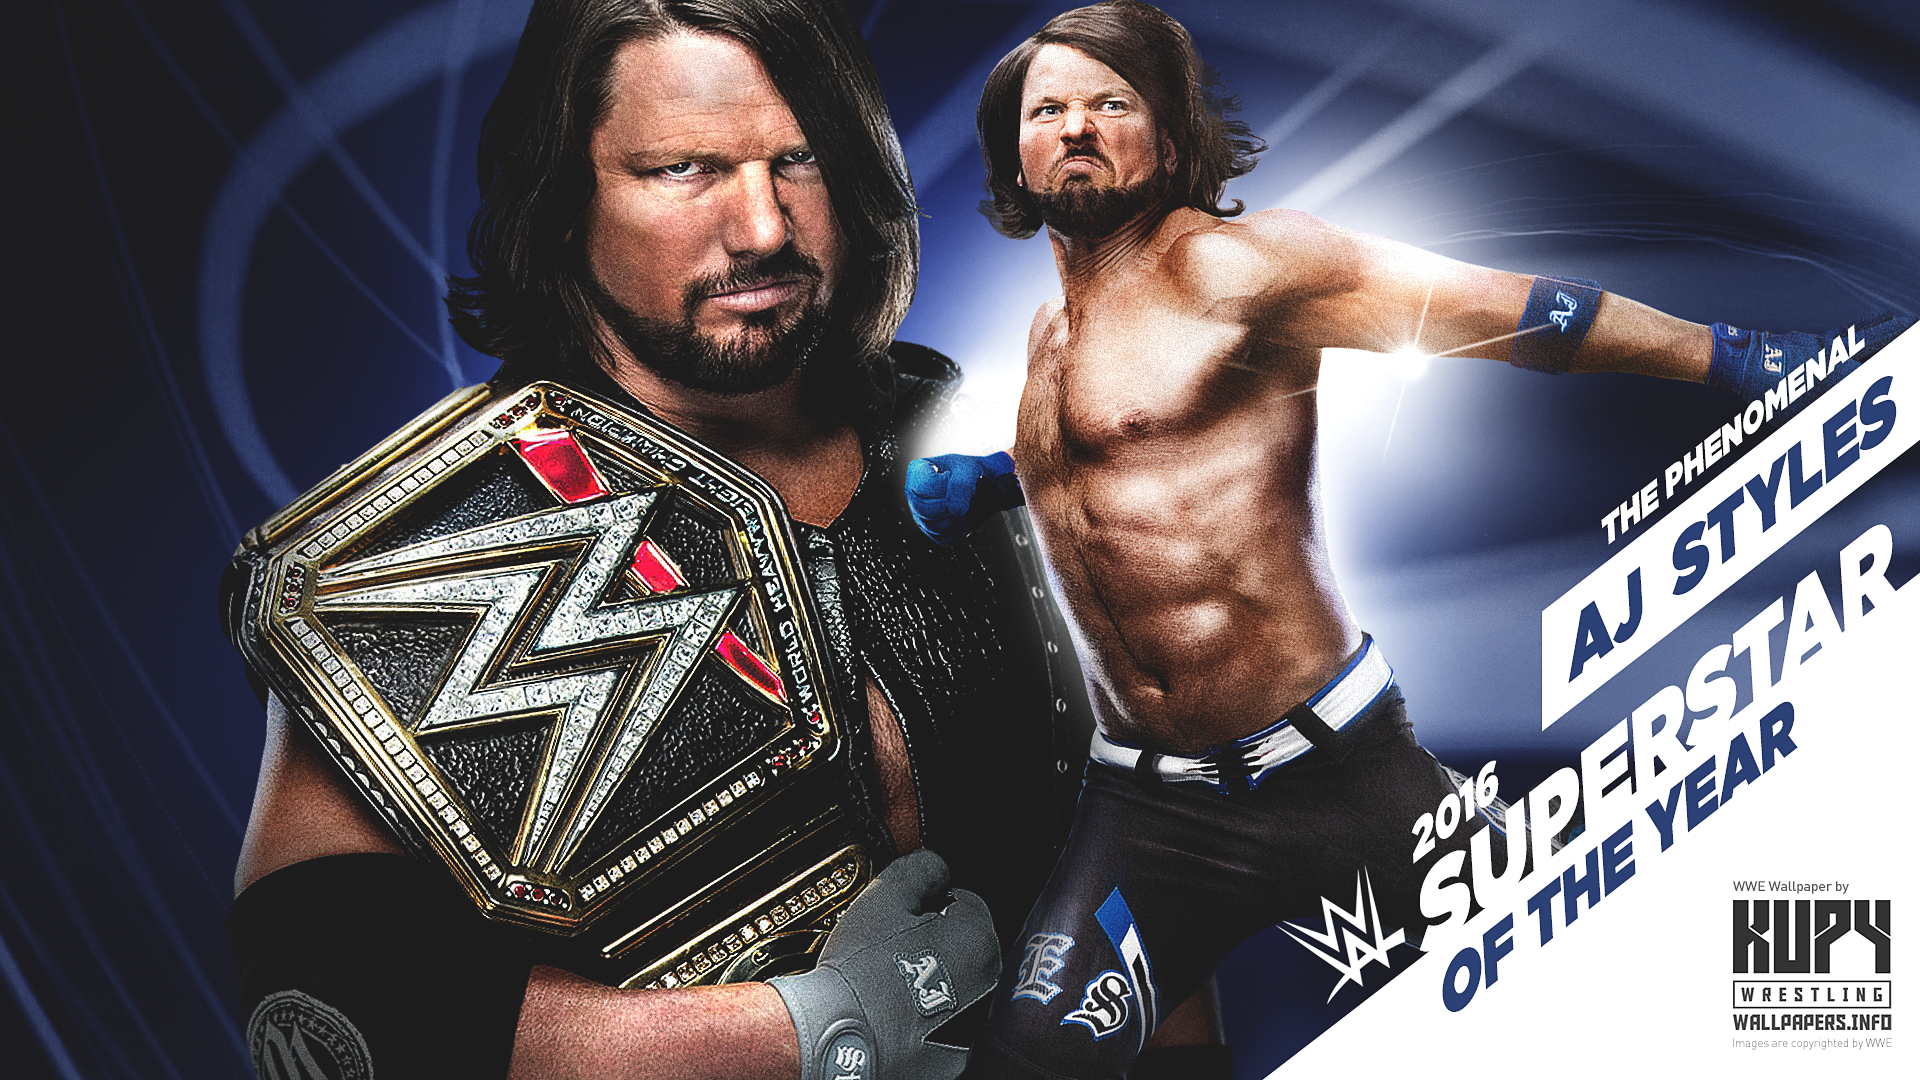 New Aj Styles 2016 Wwe Superstar Of The Year Wallpaper Kupy